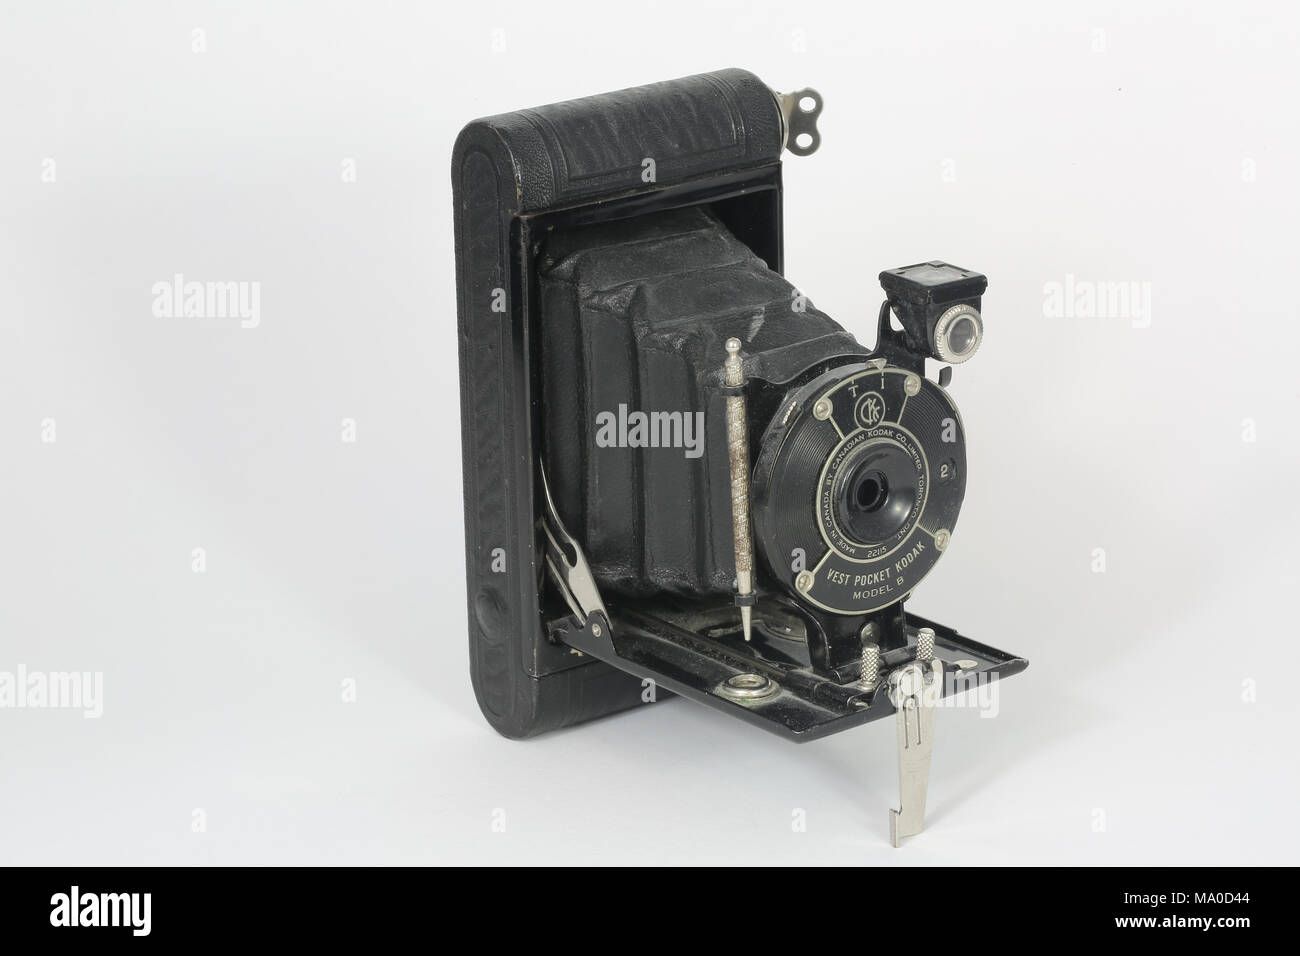 An old Eastman Kodak Vest Pocket Camera Model B. Manufactured between 1925 and 1934, this model was marketed for Boy Scouts or Girl Guides. - Stock Image